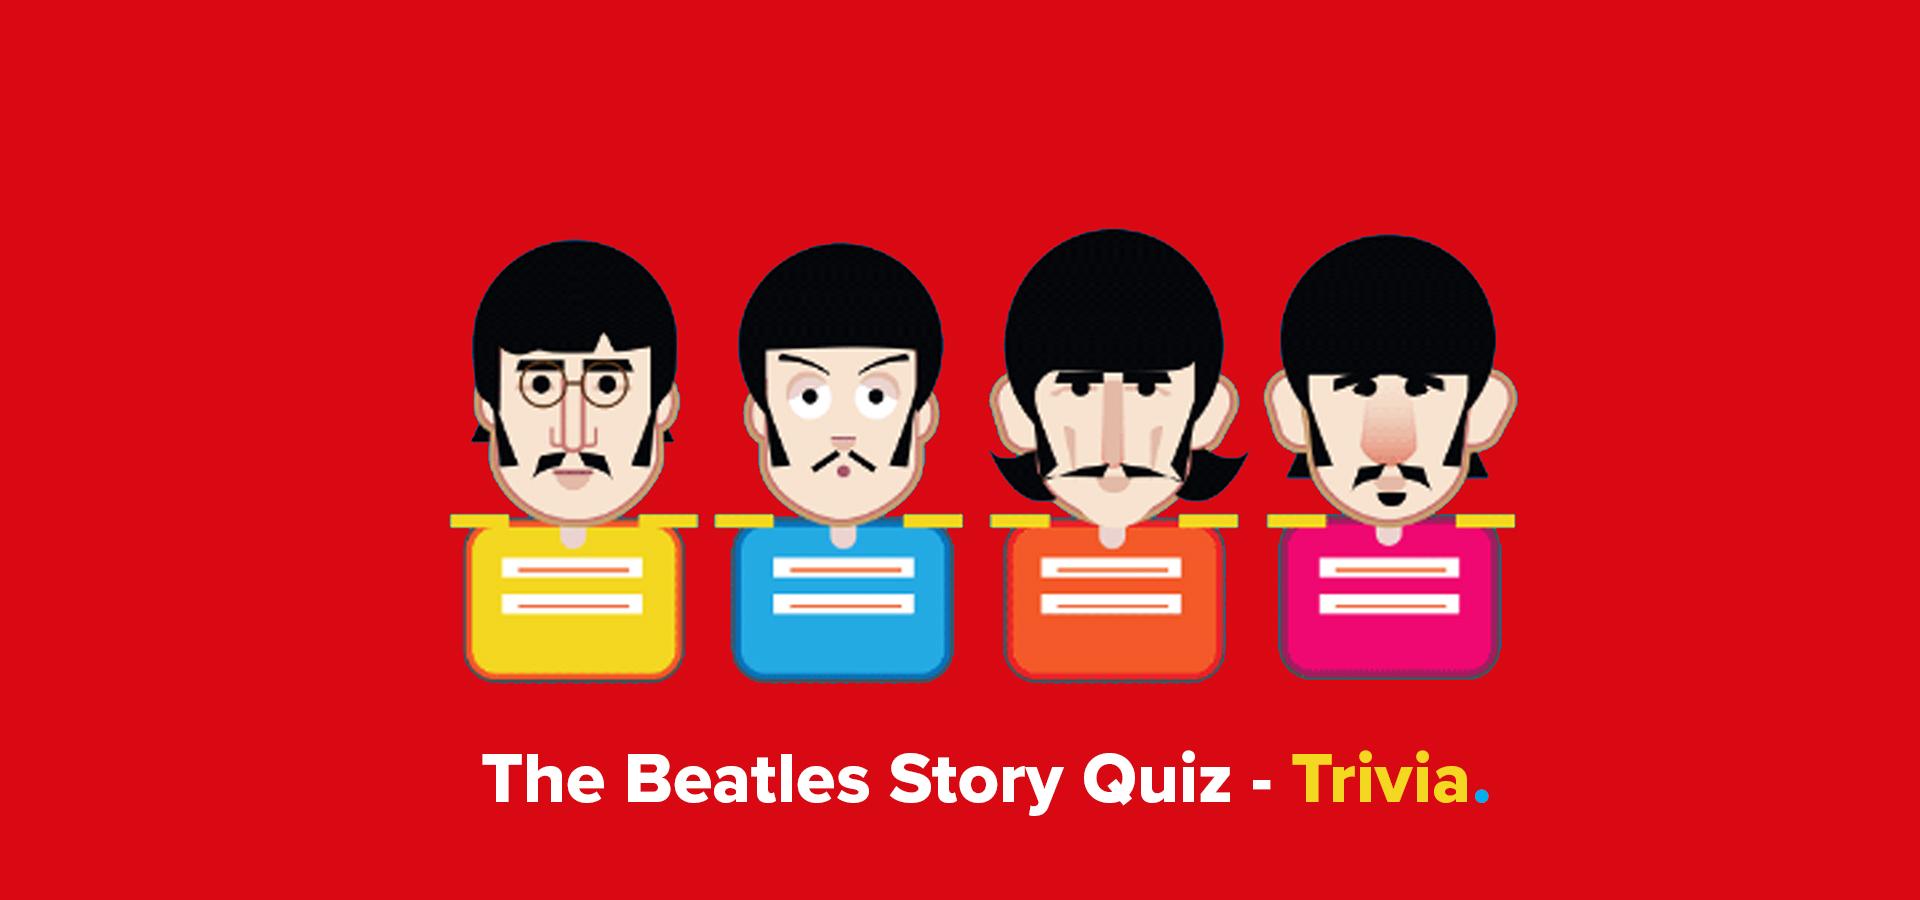 The Beatles Story Quiz